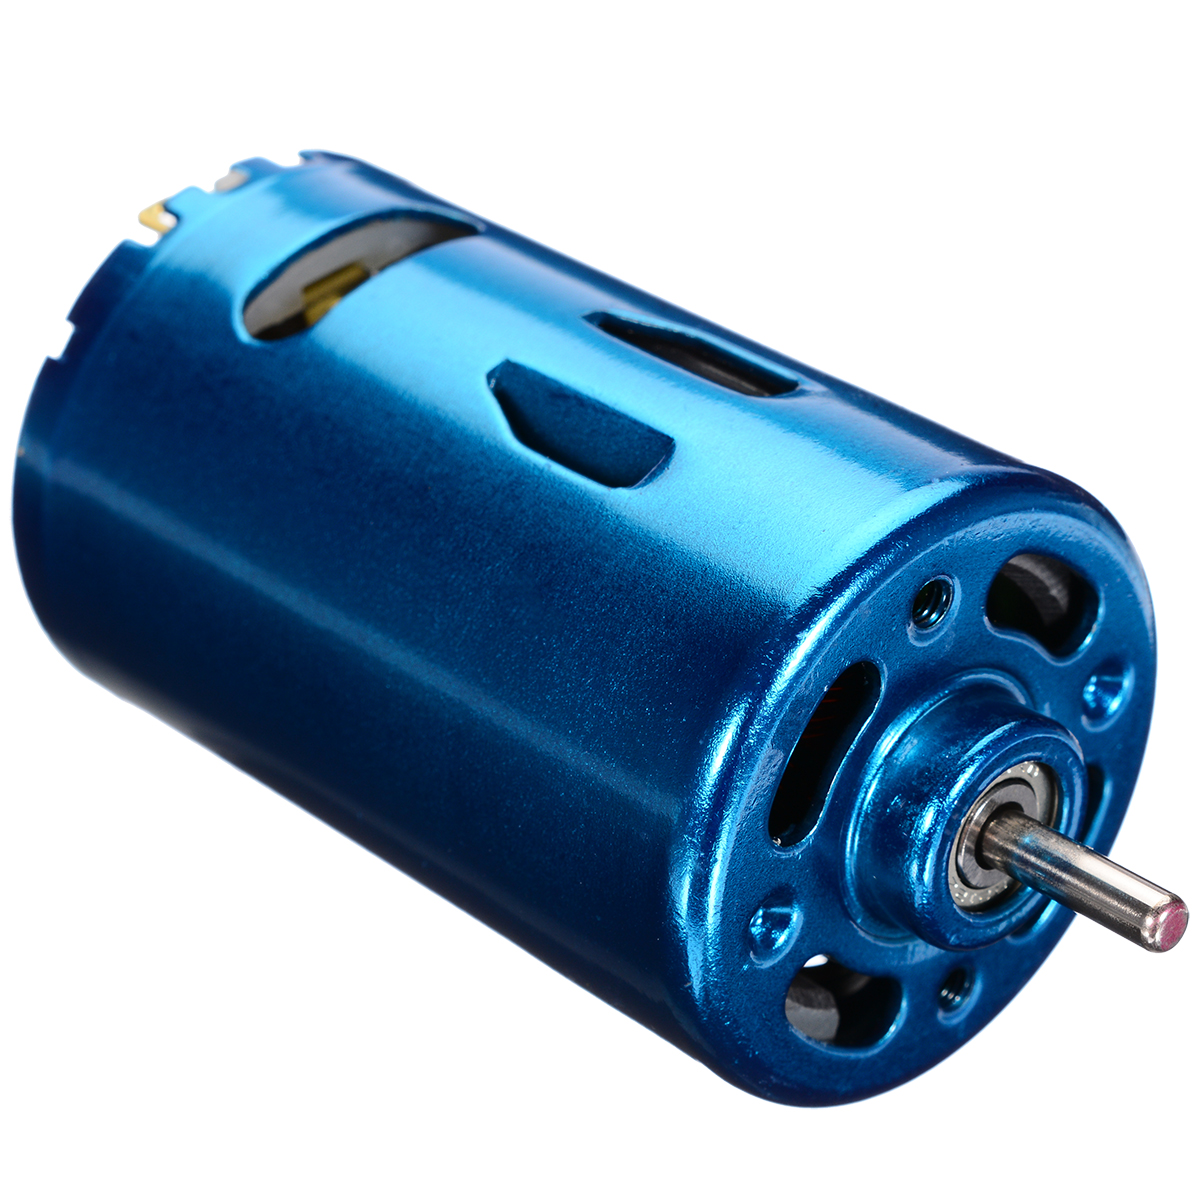 1pc High Speed Large Torque RS-550 Motor DC 7.4-24V 10000/15000/30000RPM RC Car Boat Model image